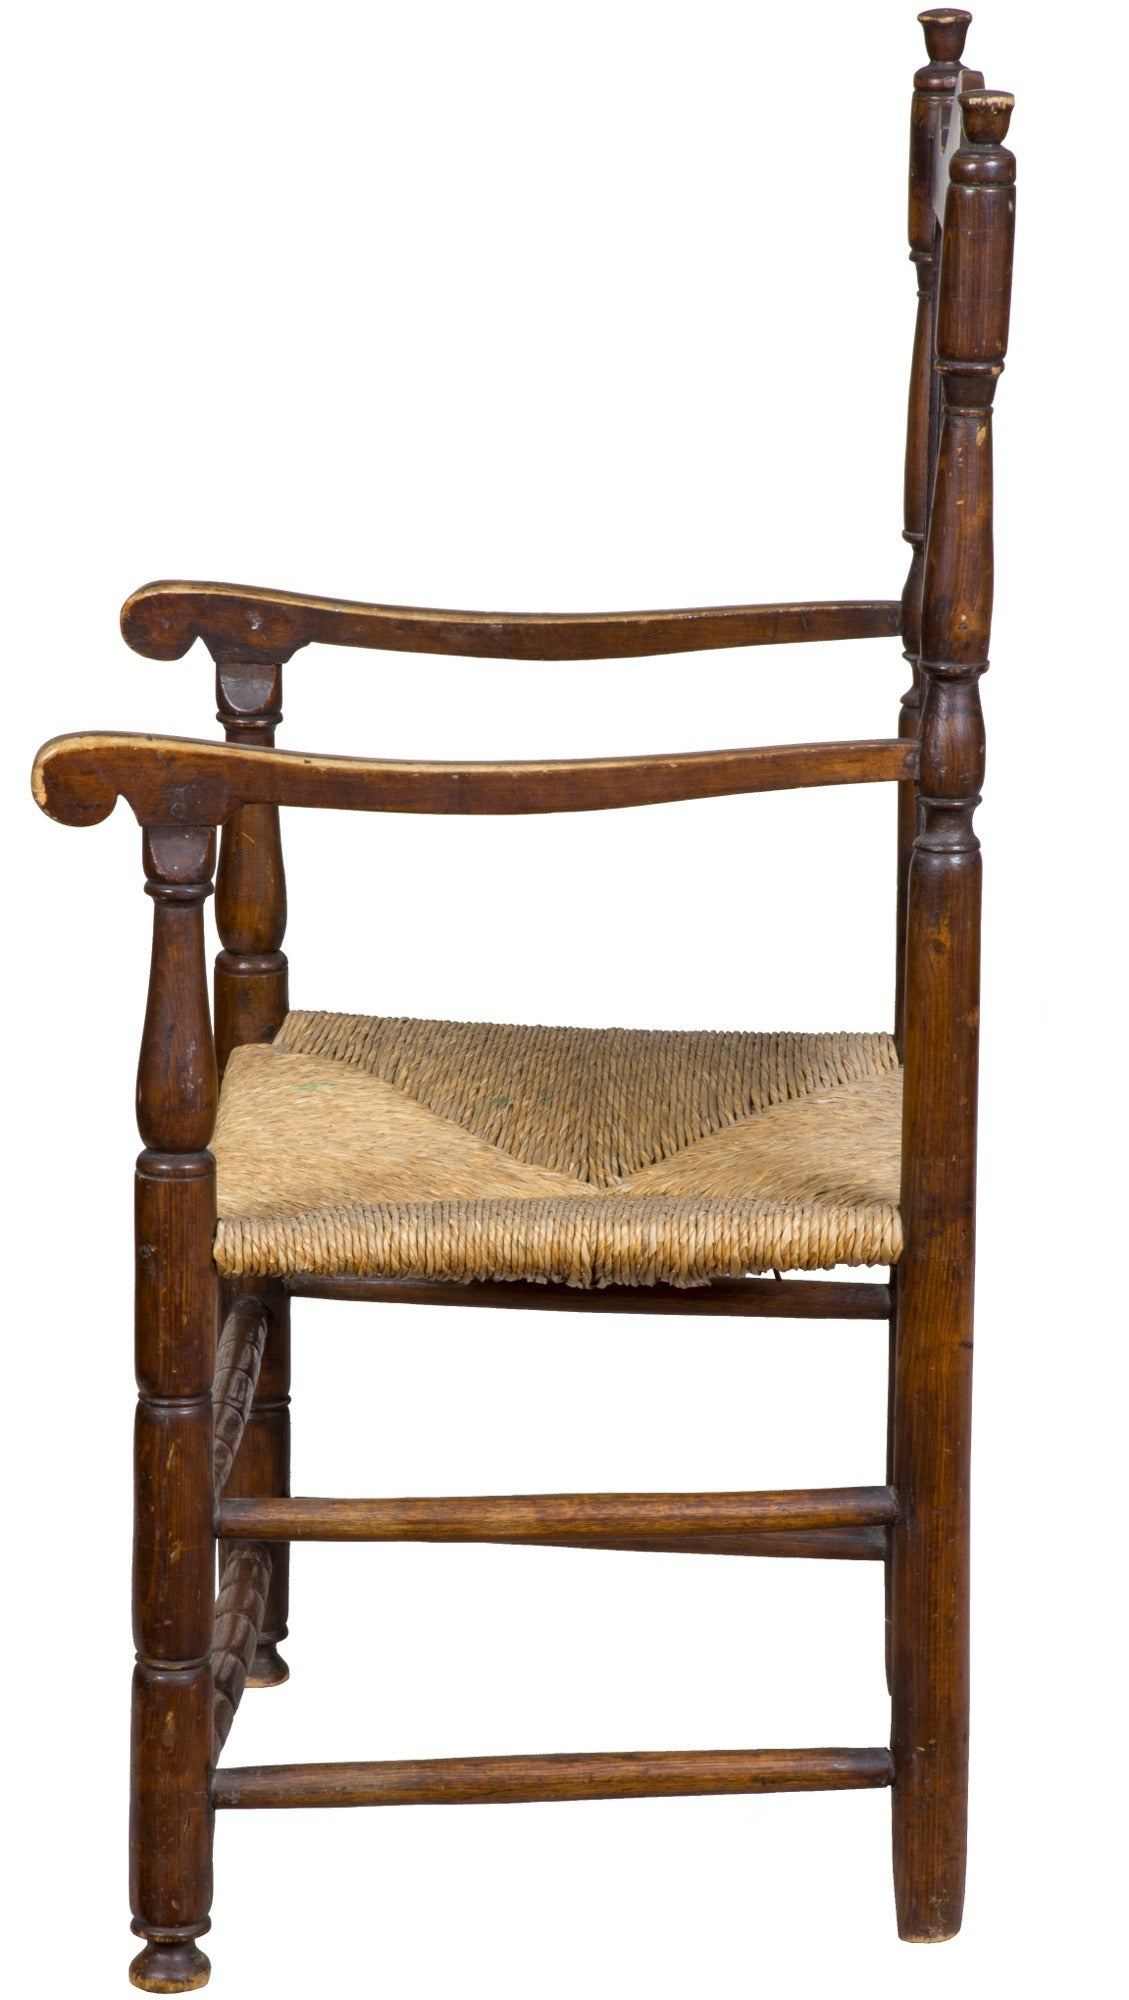 18th Century Maple William & Mary Bannister Back Armchair, Massachusetts, circa 1740-1750 For Sale